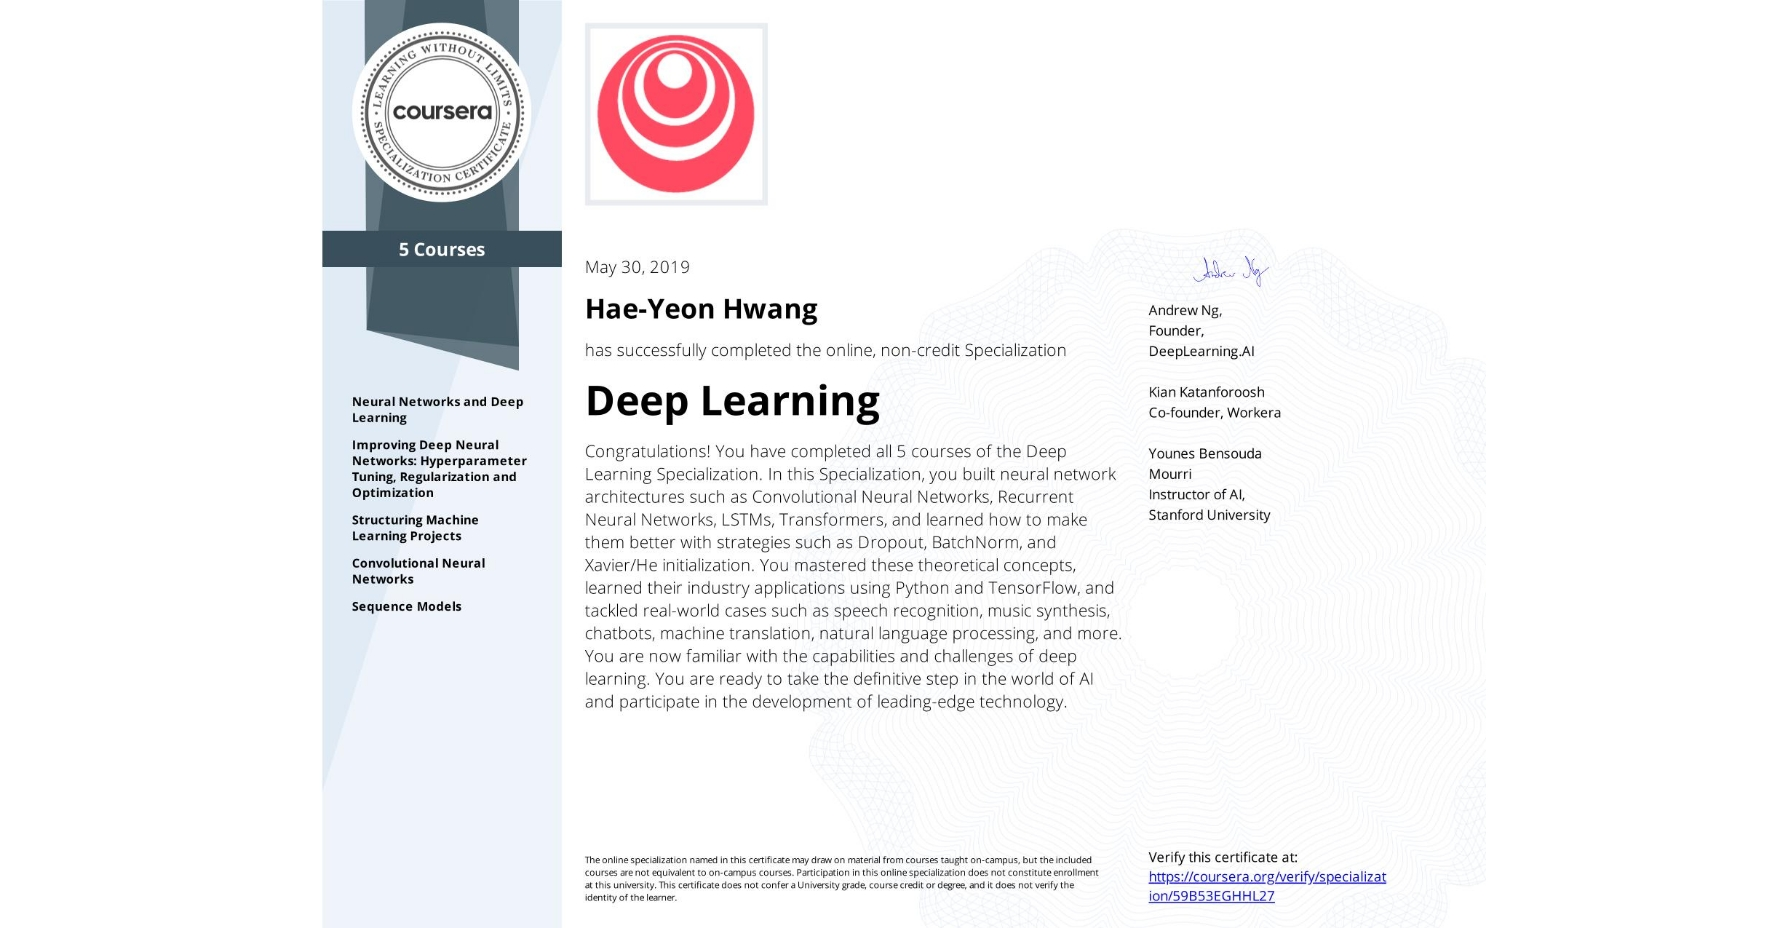 View certificate for Hae-Yeon Hwang, Deep Learning, offered through Coursera. The Deep Learning Specialization is designed to prepare learners to participate in the development of cutting-edge AI technology, and to understand the capability, the challenges, and the consequences of the rise of deep learning. Through five interconnected courses, learners develop a profound knowledge of the hottest AI algorithms, mastering deep learning from its foundations (neural networks) to its industry applications (Computer Vision, Natural Language Processing, Speech Recognition, etc.).